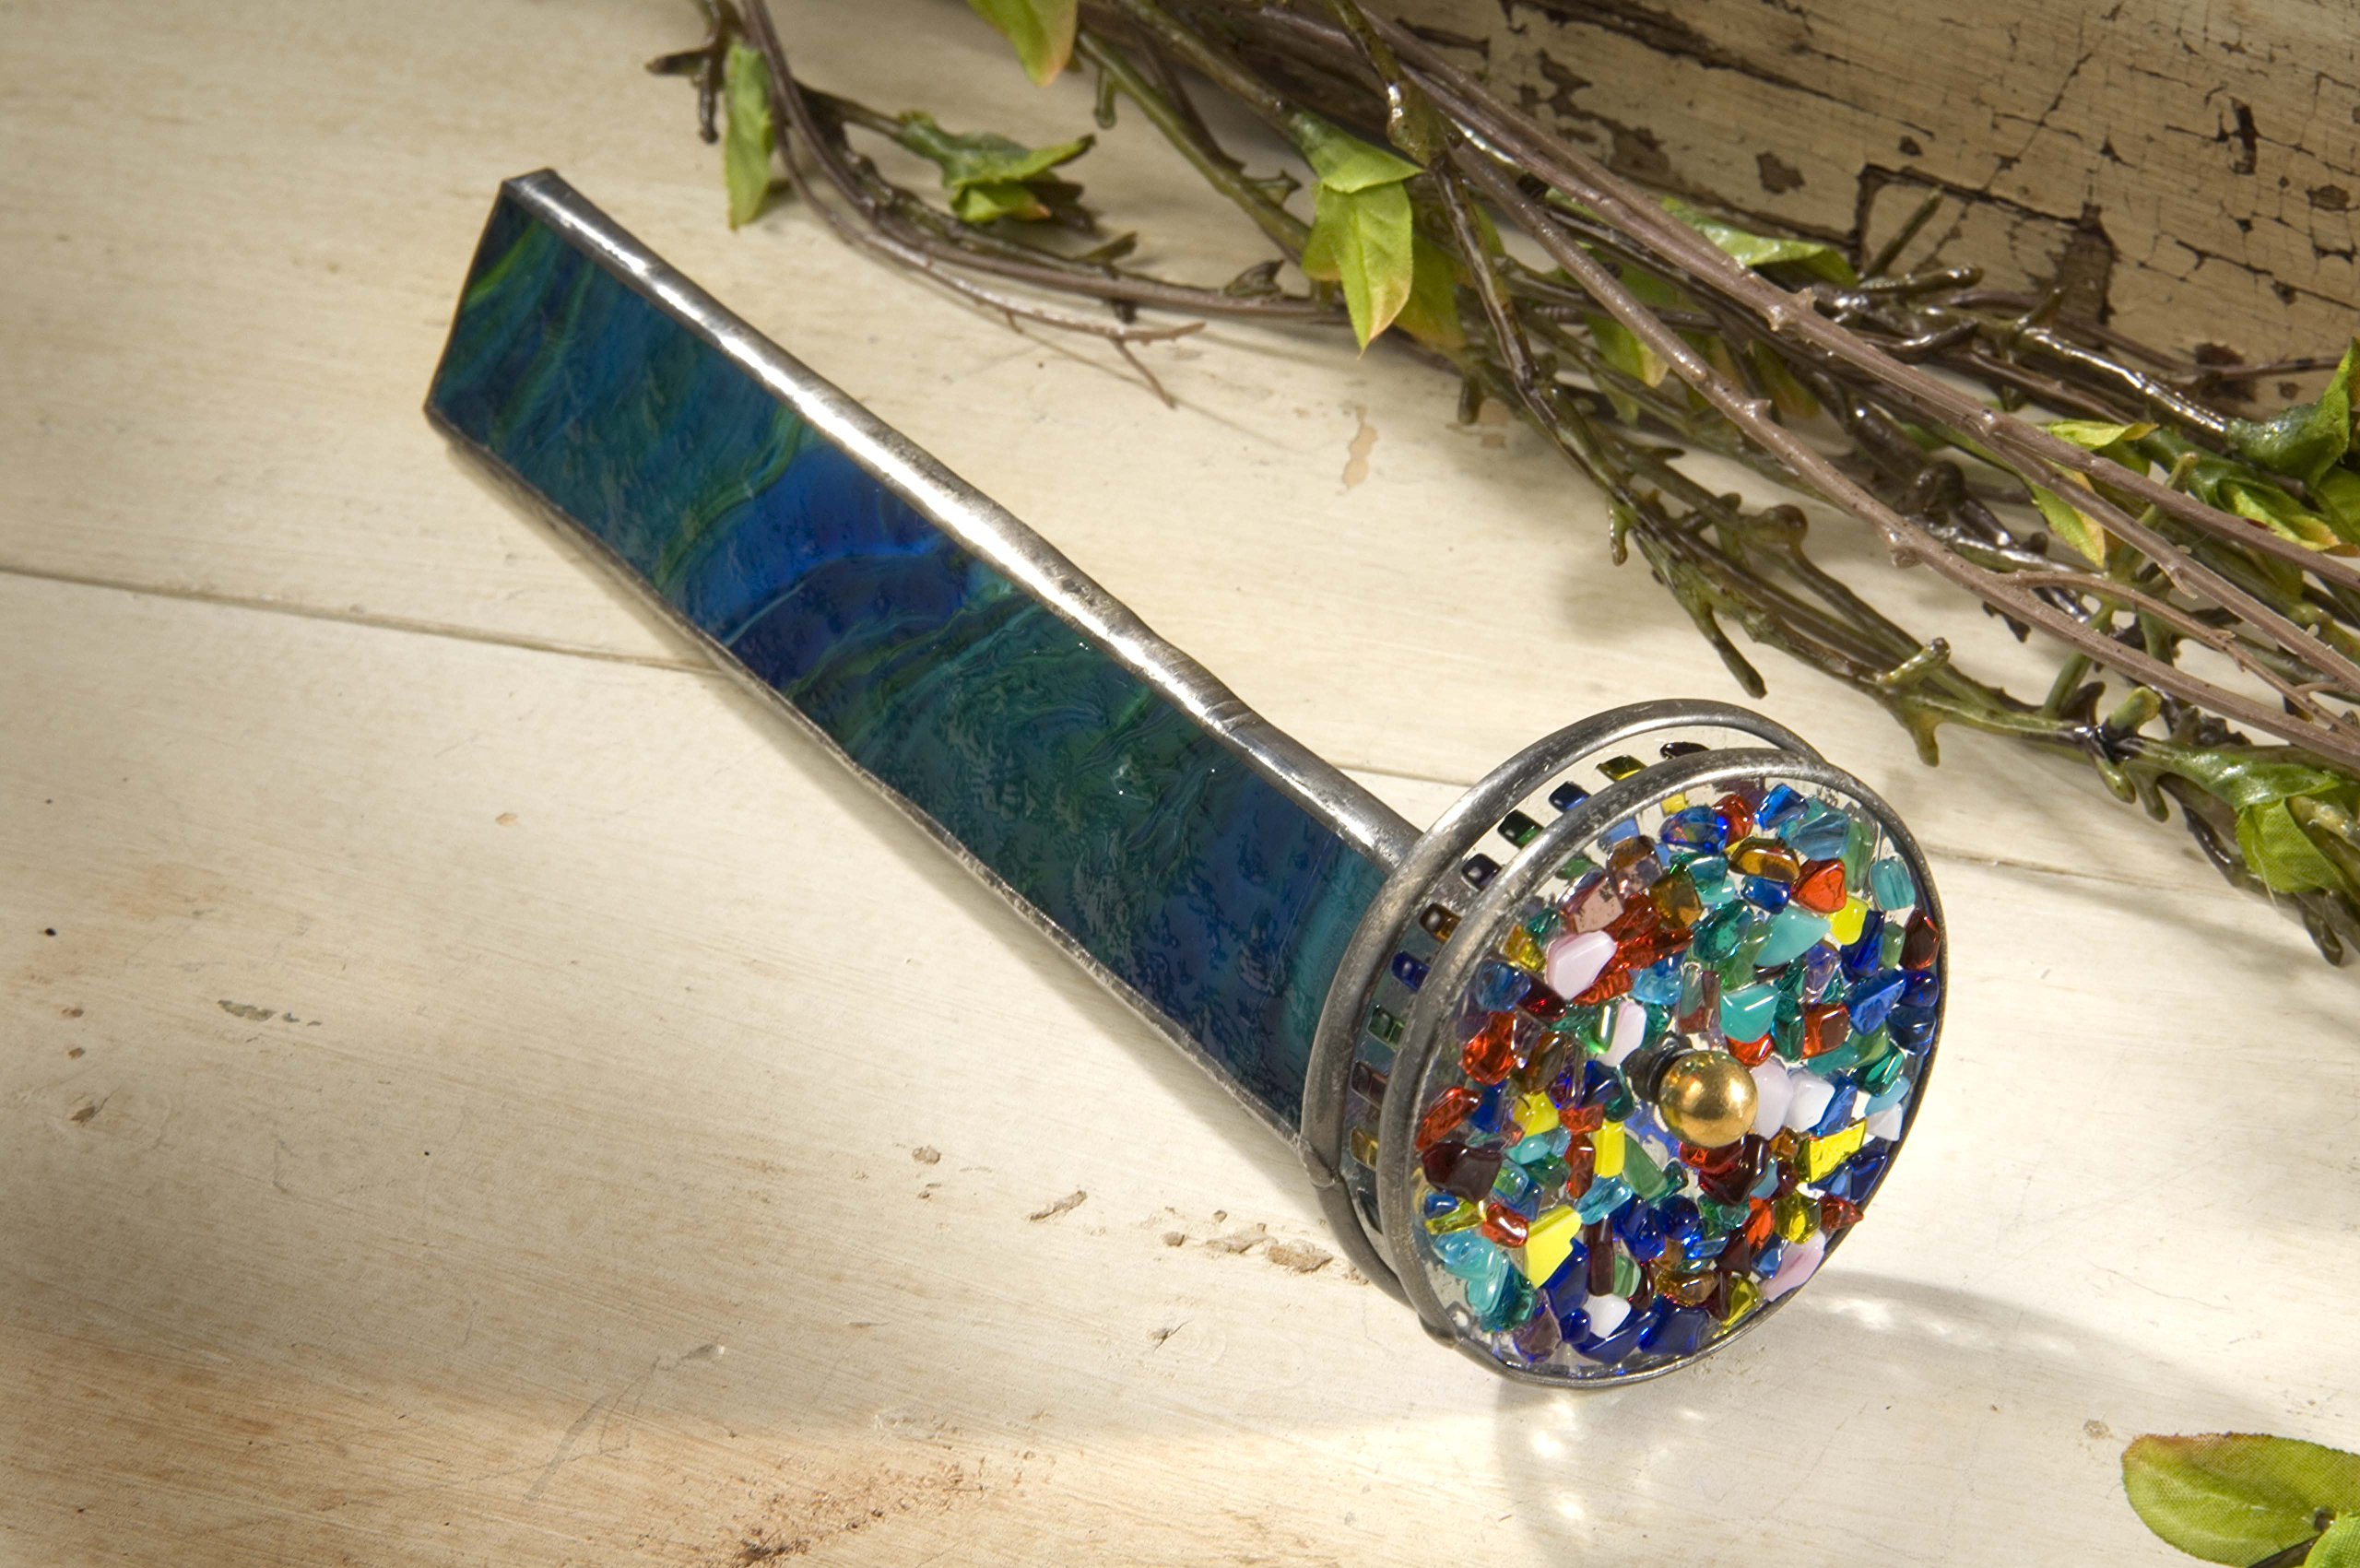 J Devlin Kal 106 Green Stained Glass Kaleidoscope with Two Wheels Gift for Dad Father's Day by J Devlin Glass Art (Image #2)